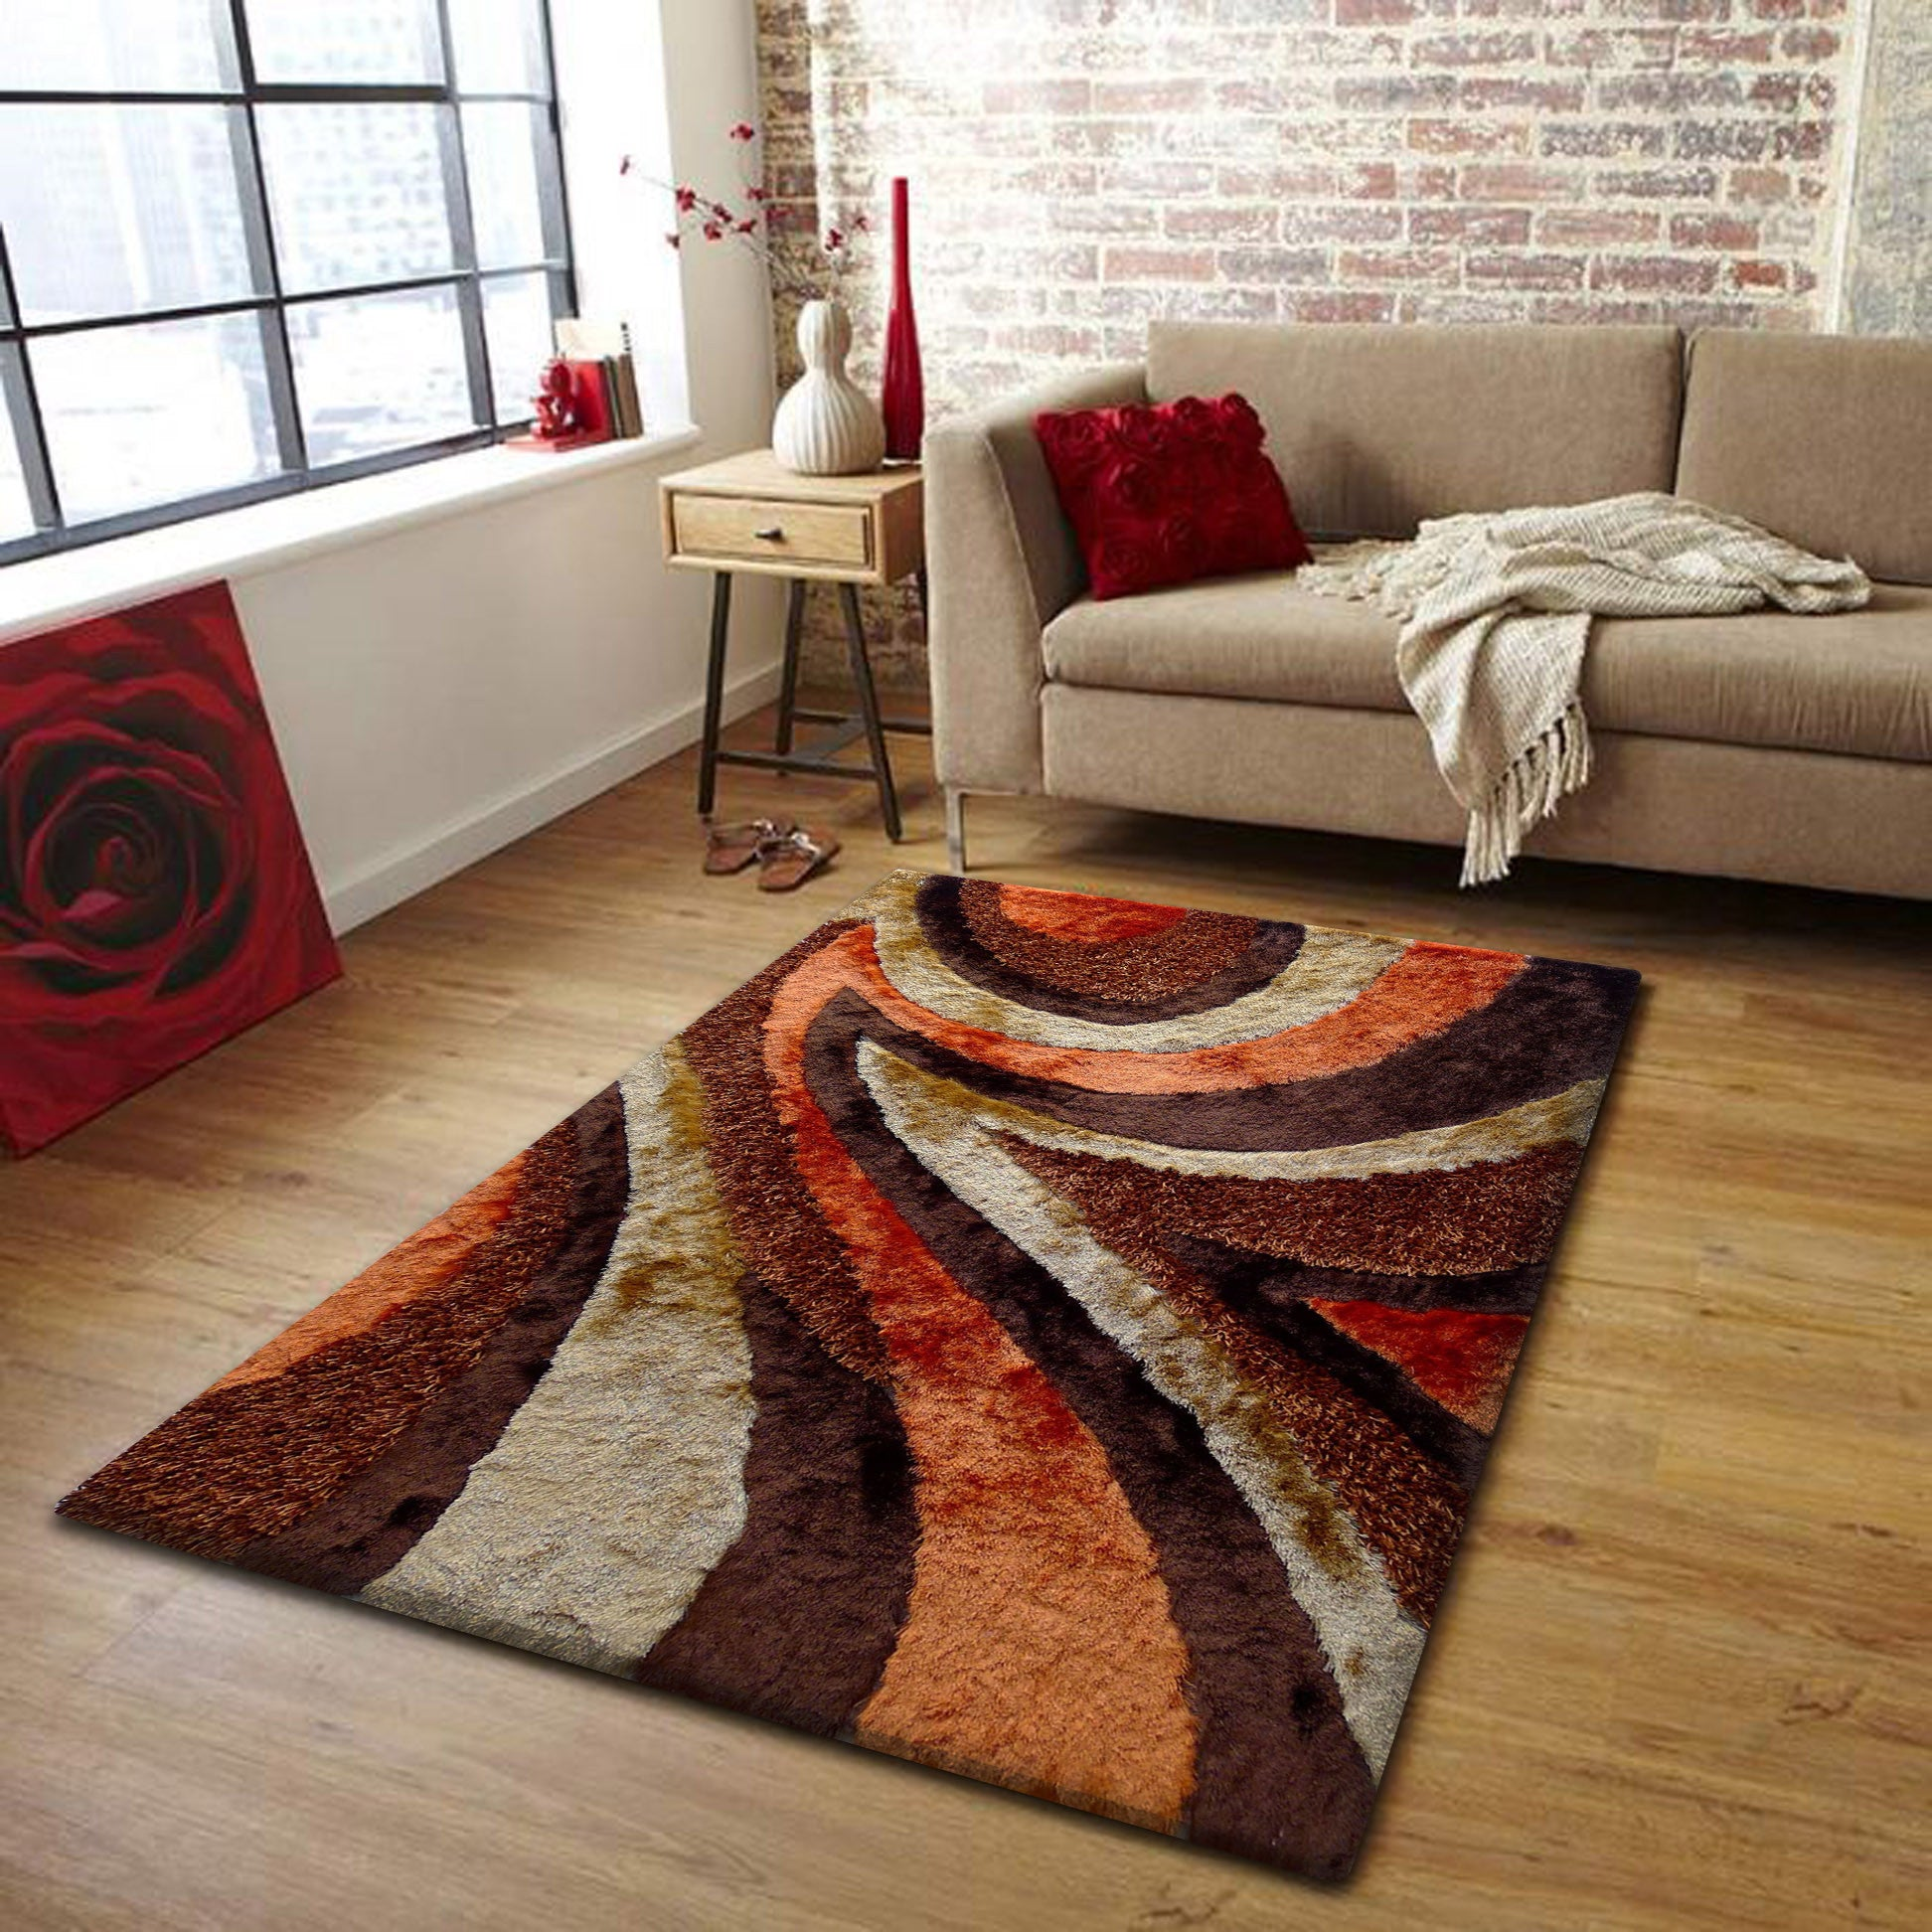 2 Piece Set | Plush Shag Brown With Orange Area Rug With Rug Pad Part 20